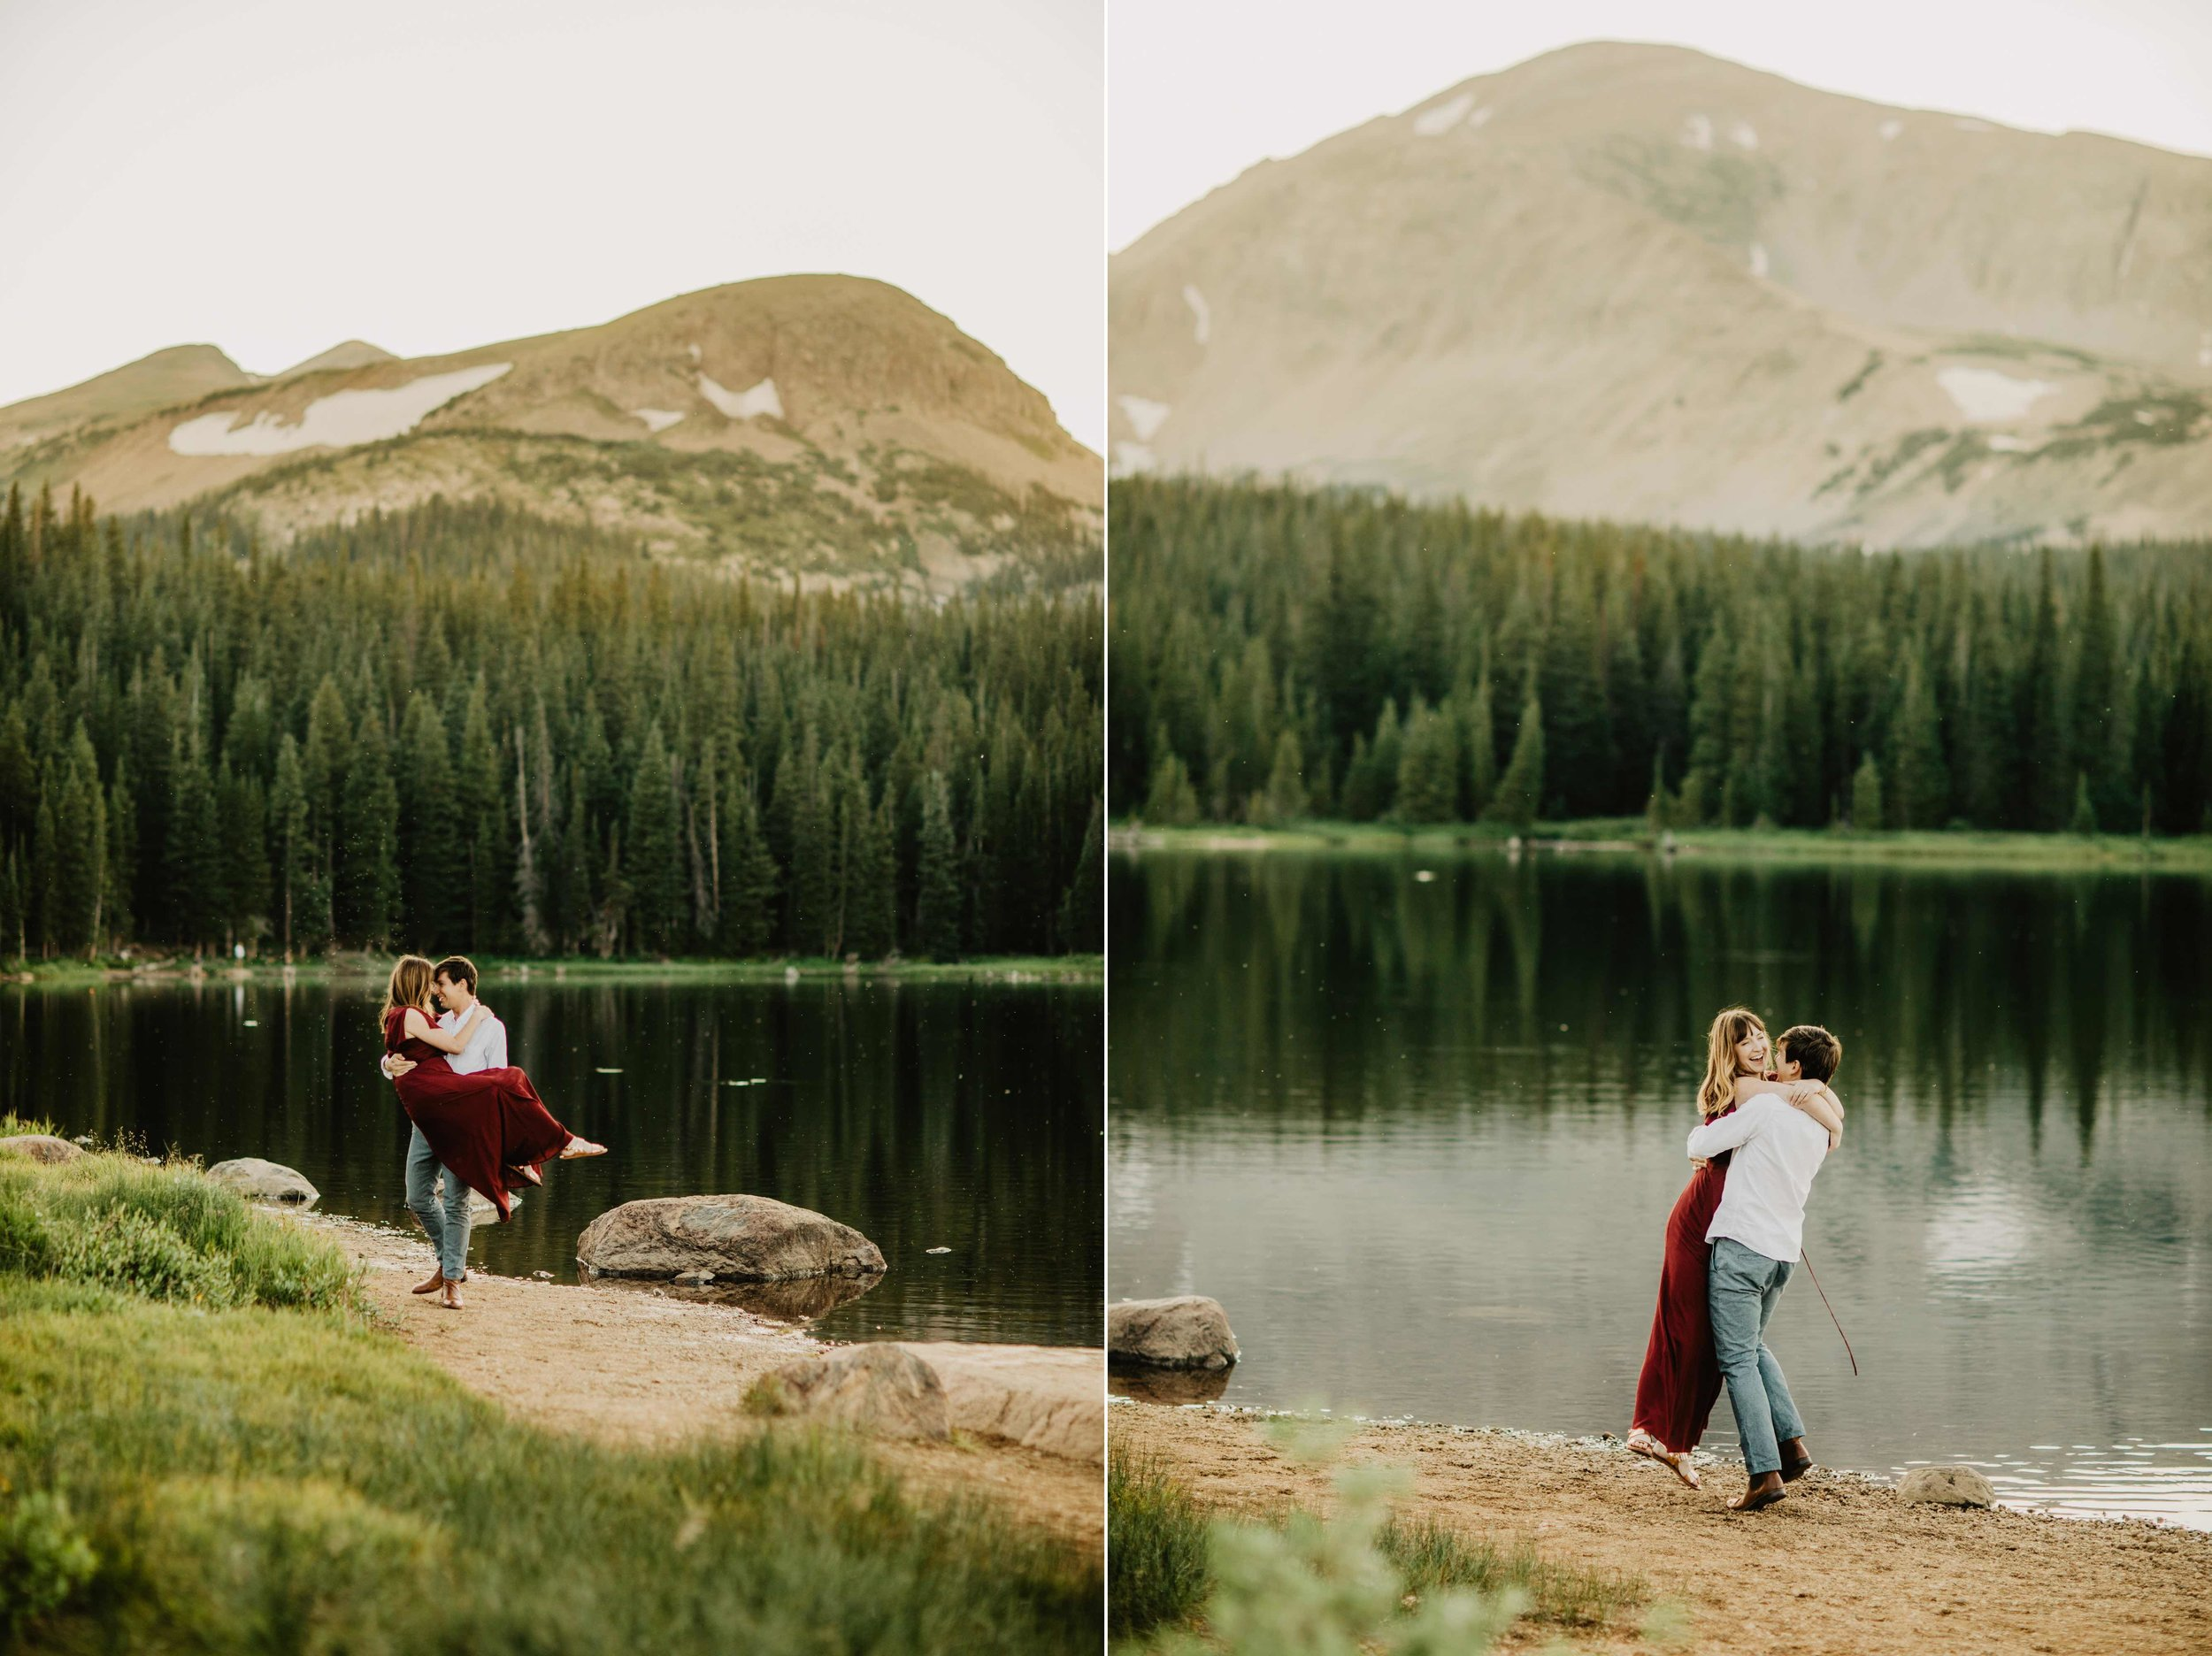 Kisa Conrad Favorites-0023-colorado-wedding-photographer-denver-springs-vail.jpeg